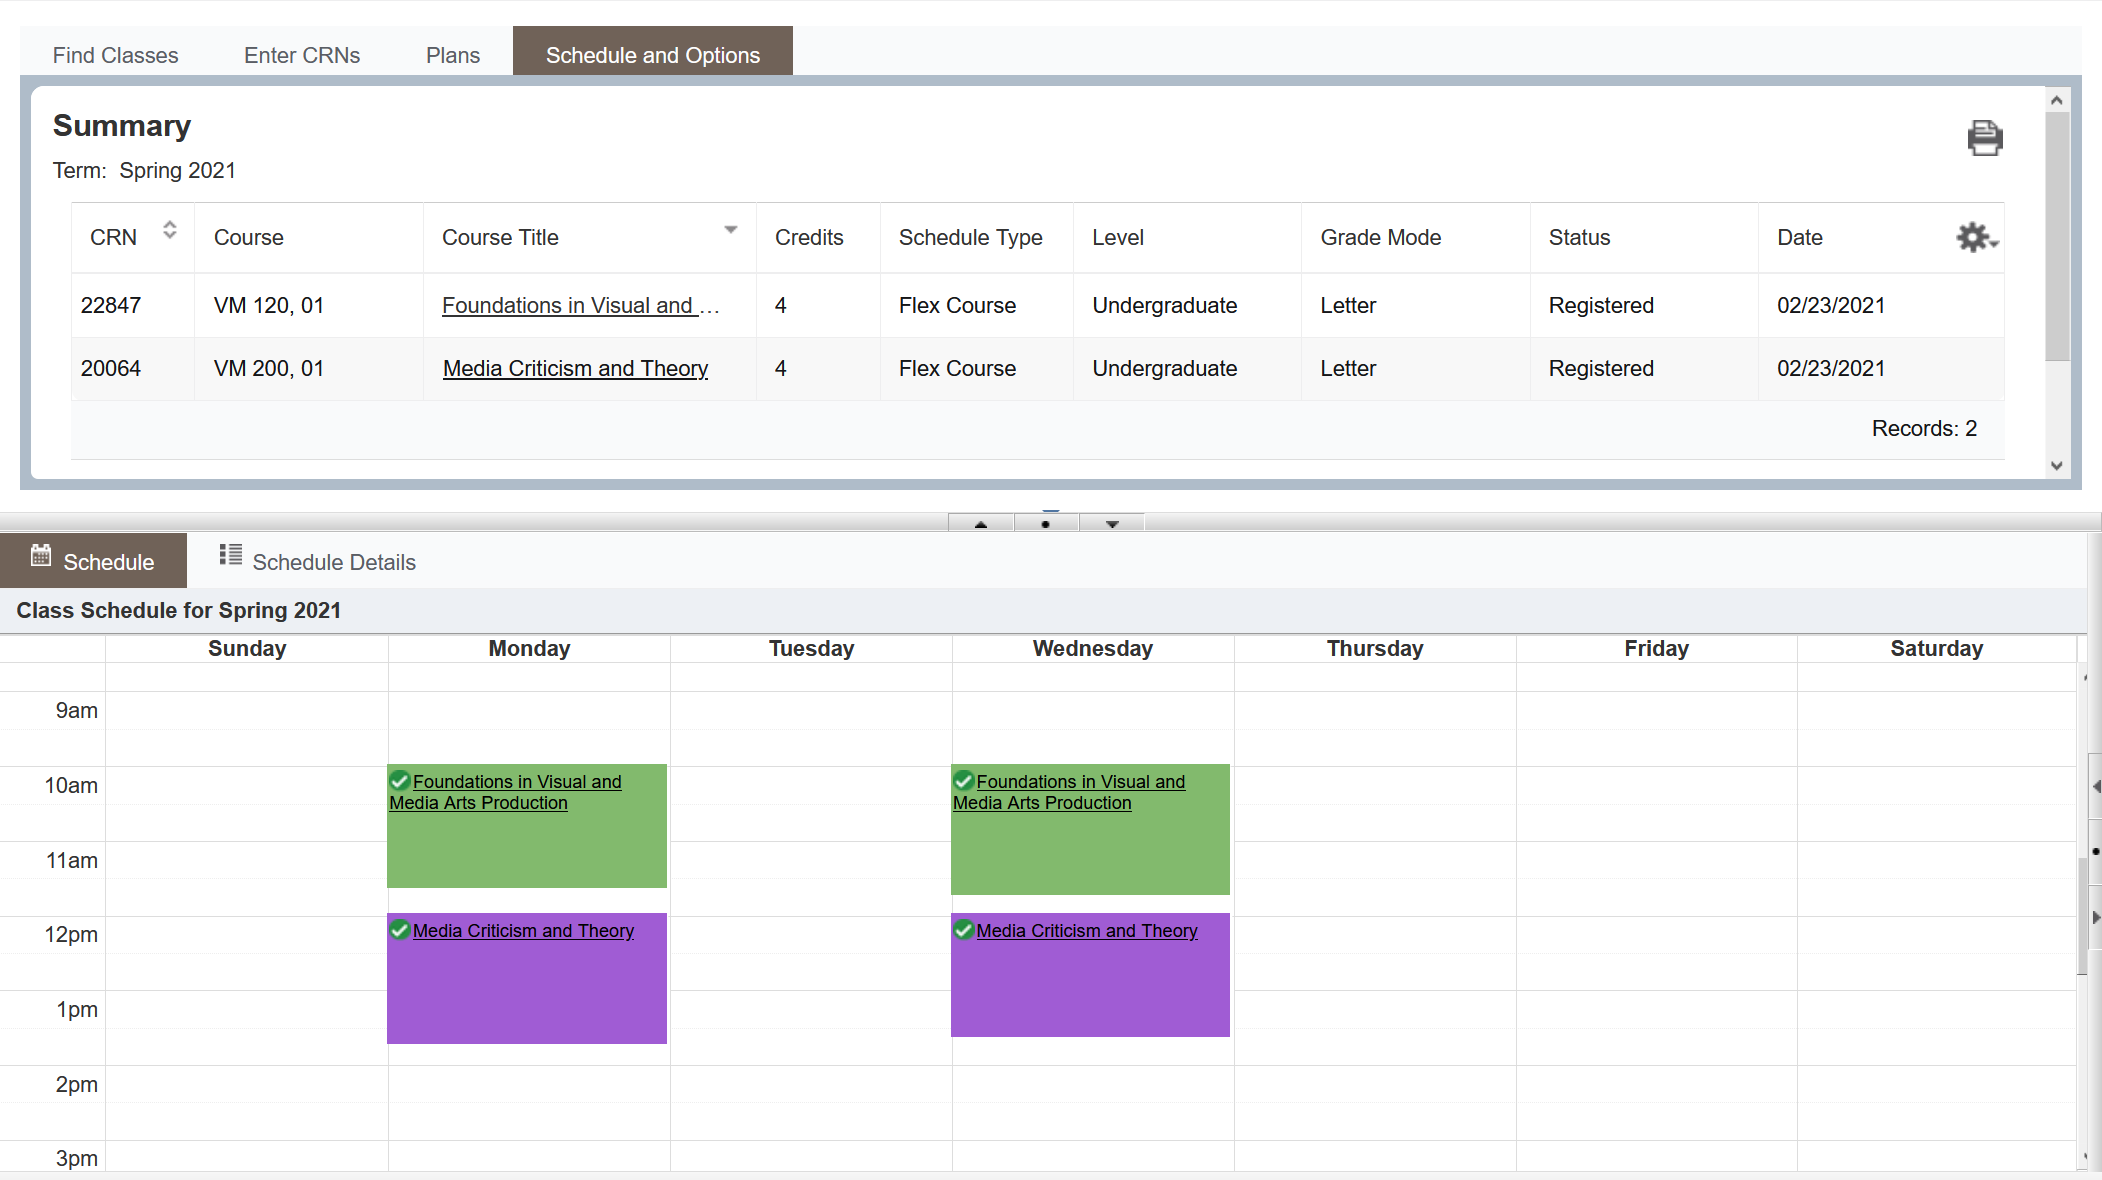 Screenshot of Schedule and Options page